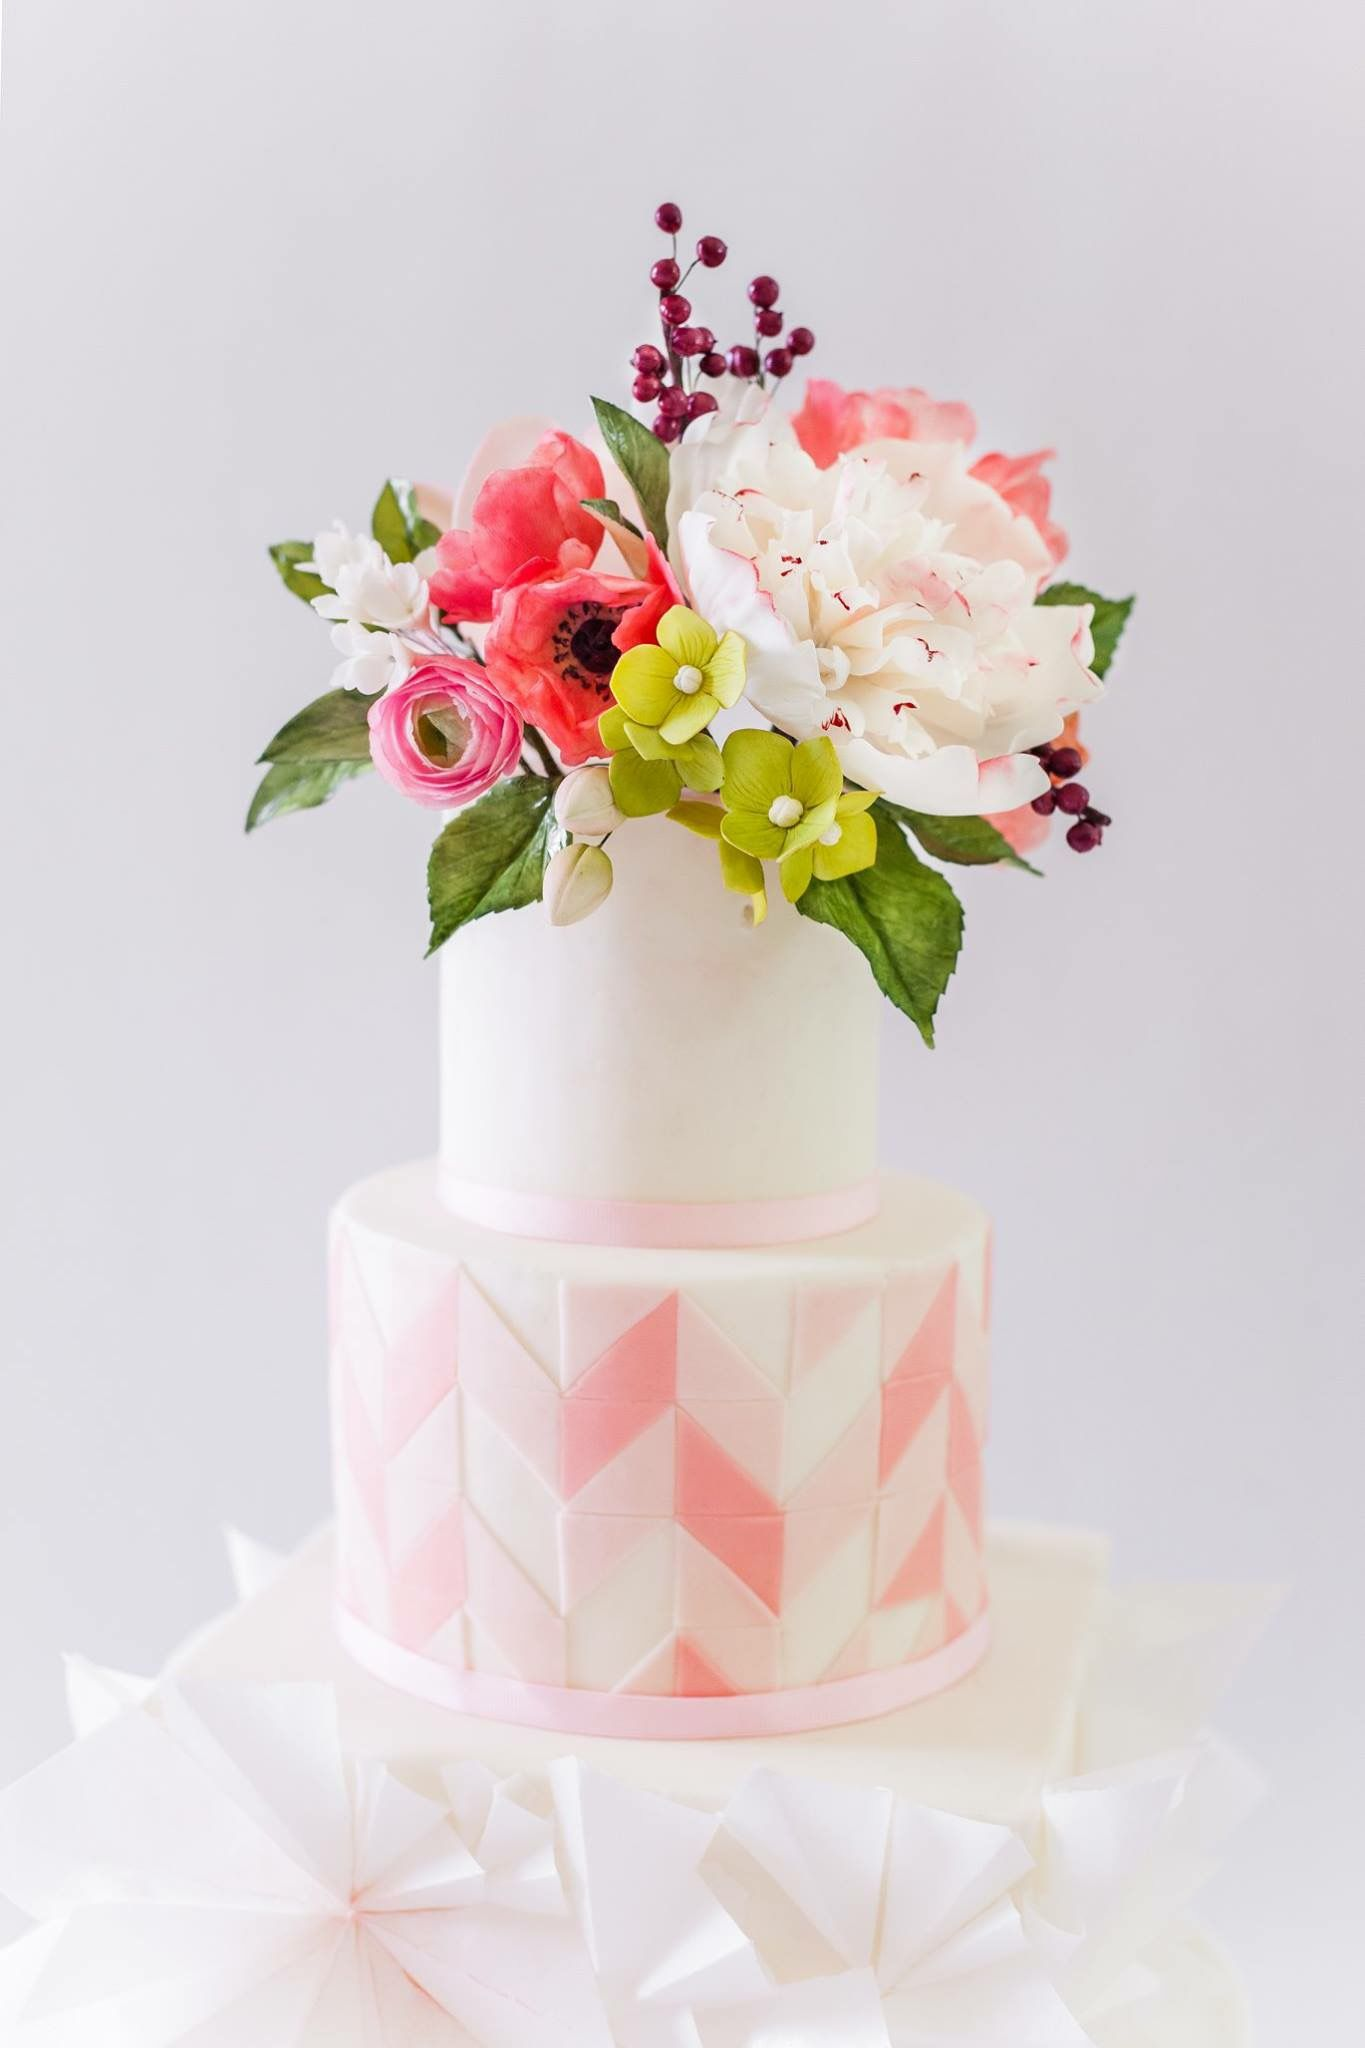 Pin By Cheryl Fisher On Its All About The Cake Pinterest Cake